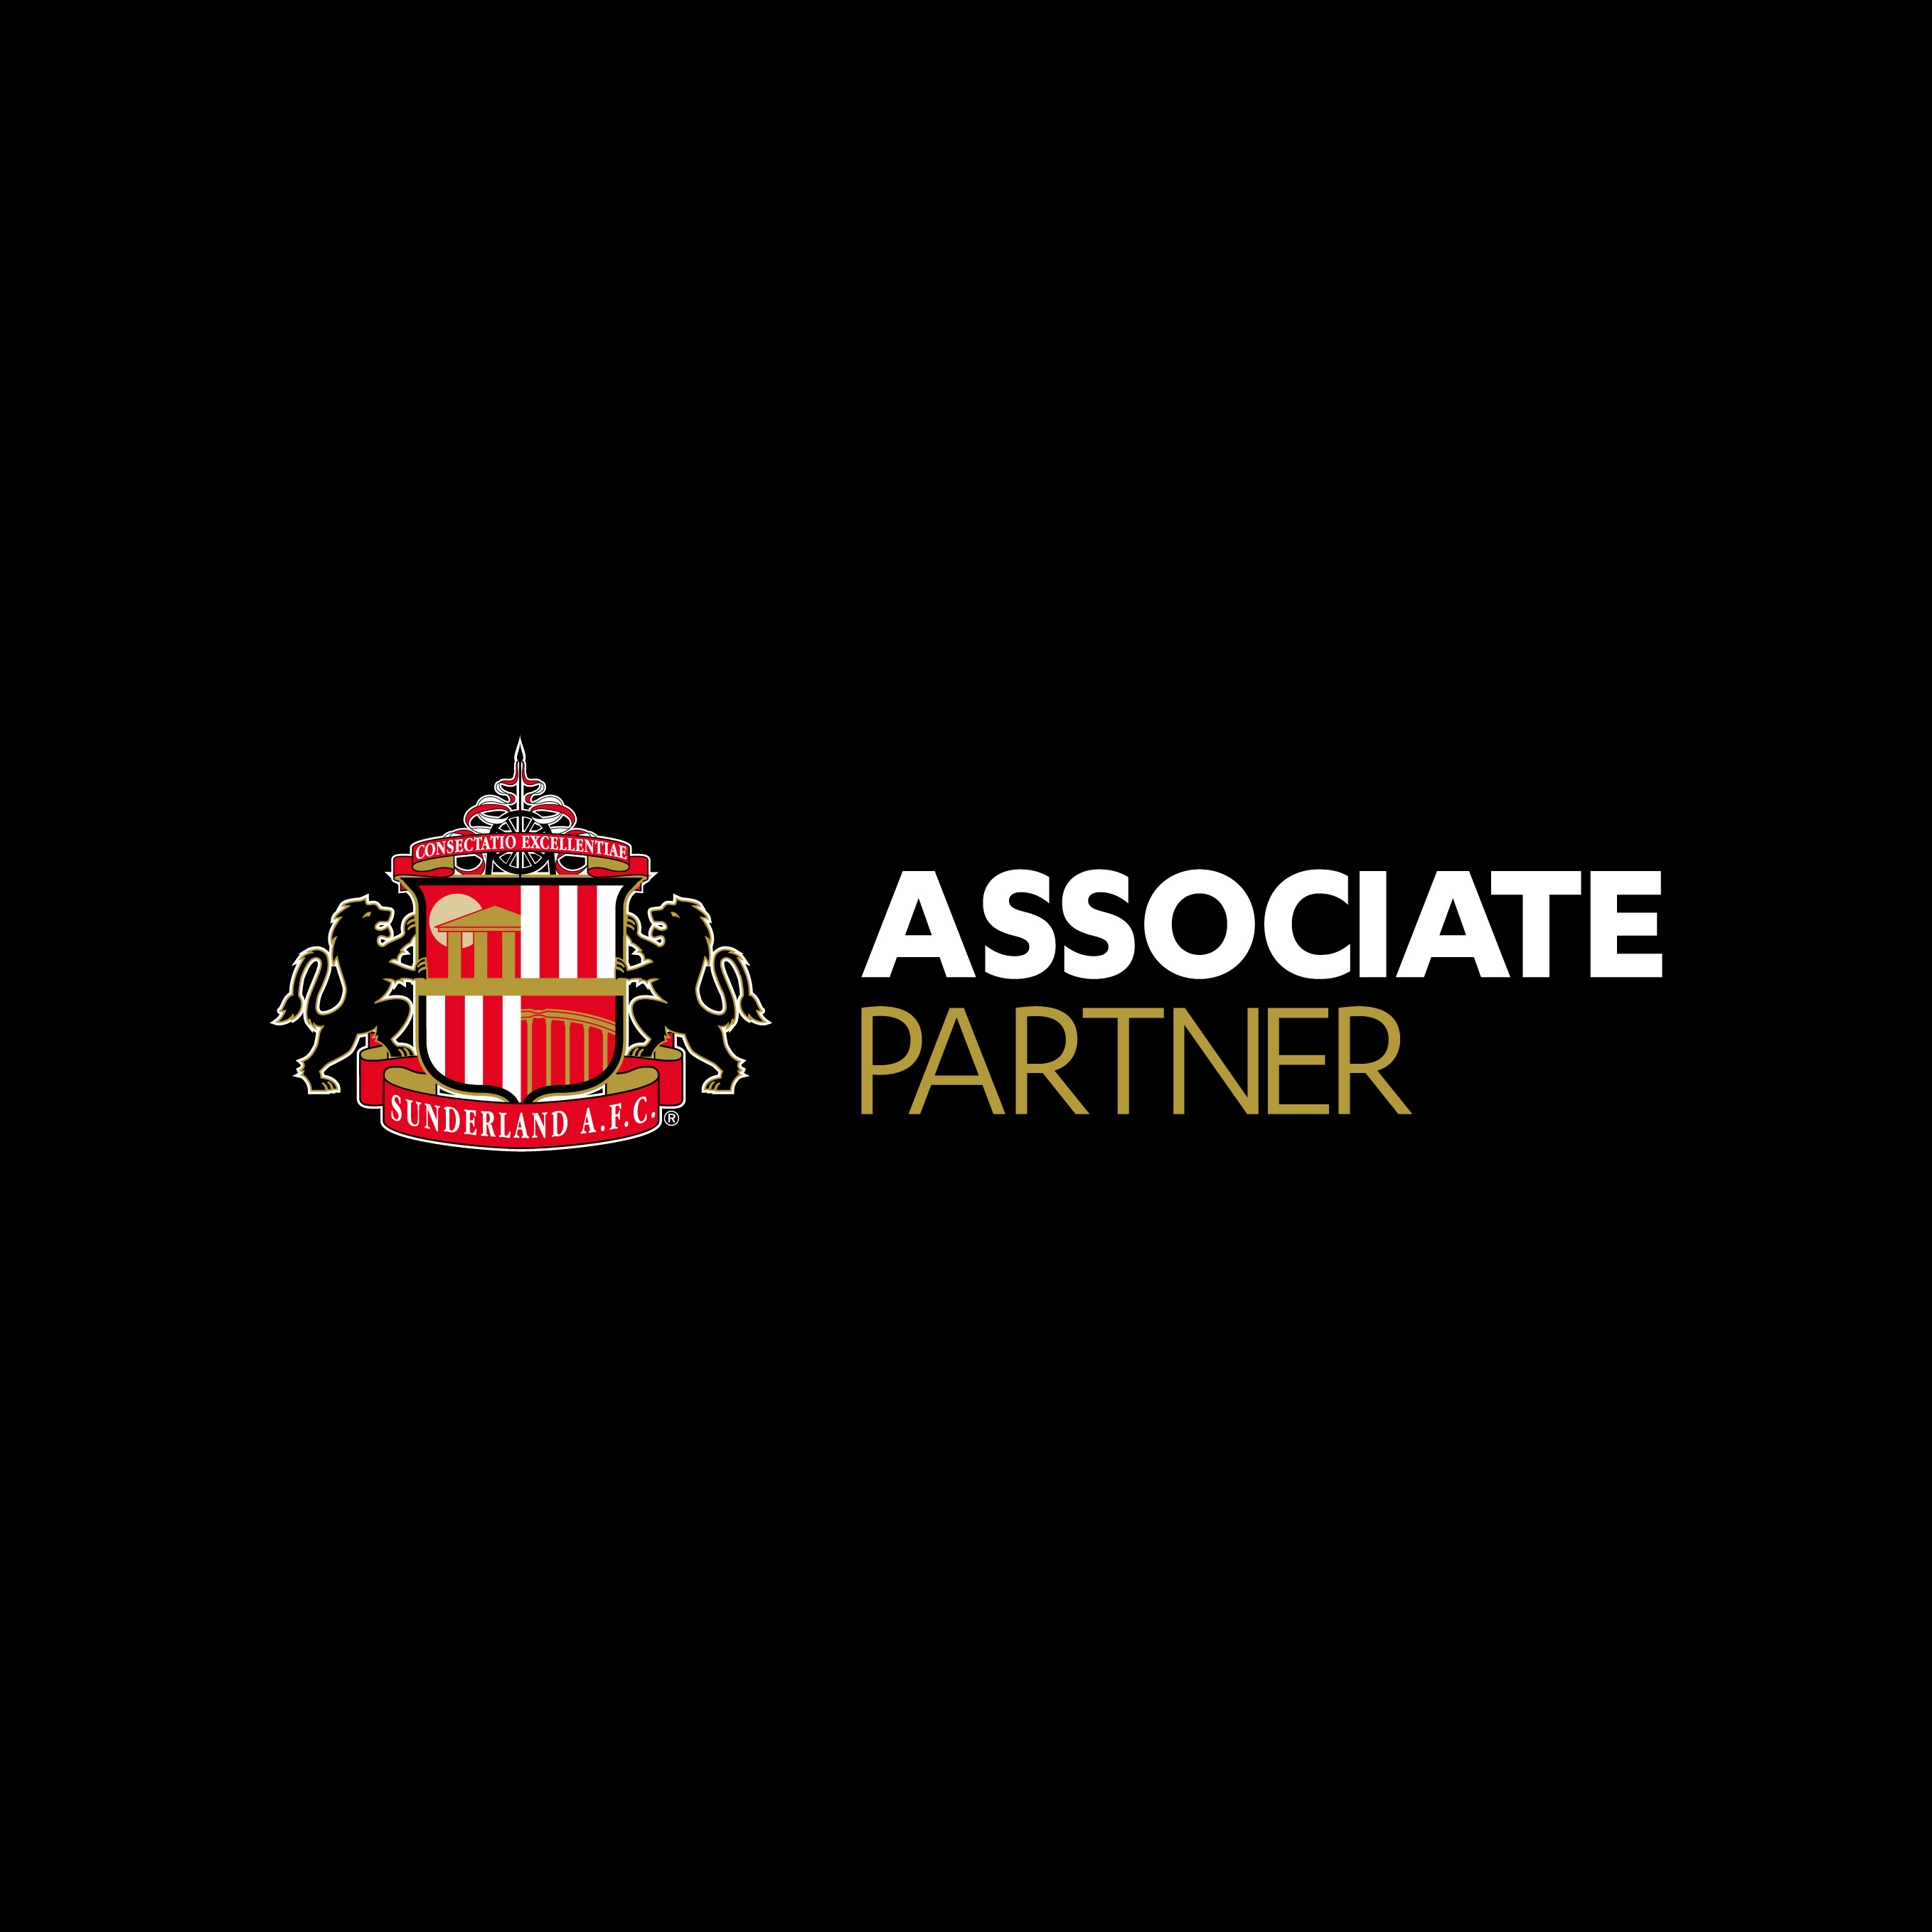 Sunderland AFC Associate Partner logo in black